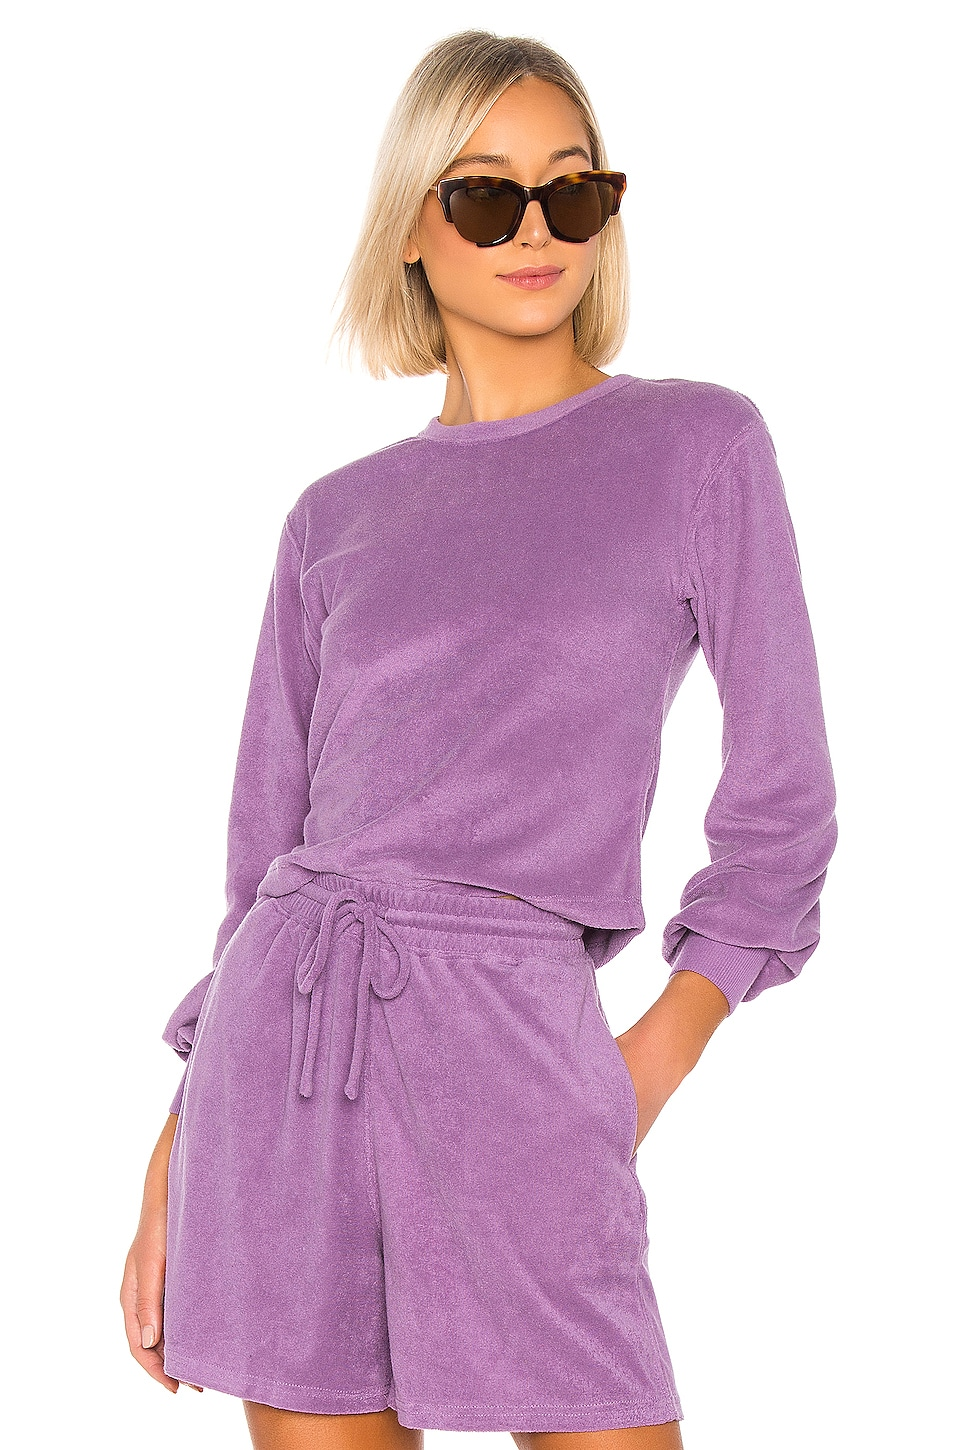 LPA Viola Top in Purple